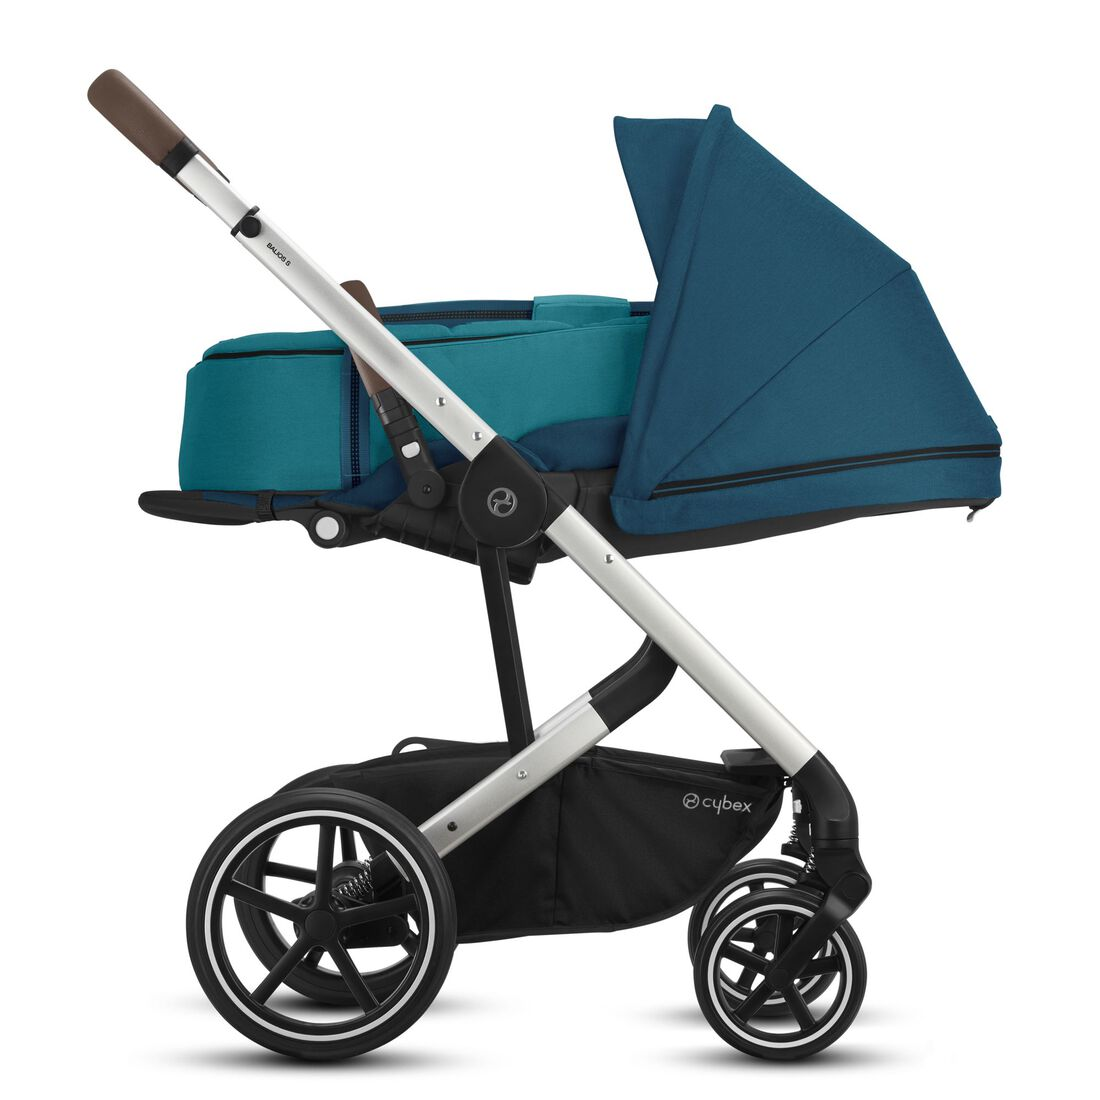 CYBEX Balios S Lux - River Blue (Silver Frame) in River Blue (Silver Frame) large image number 4